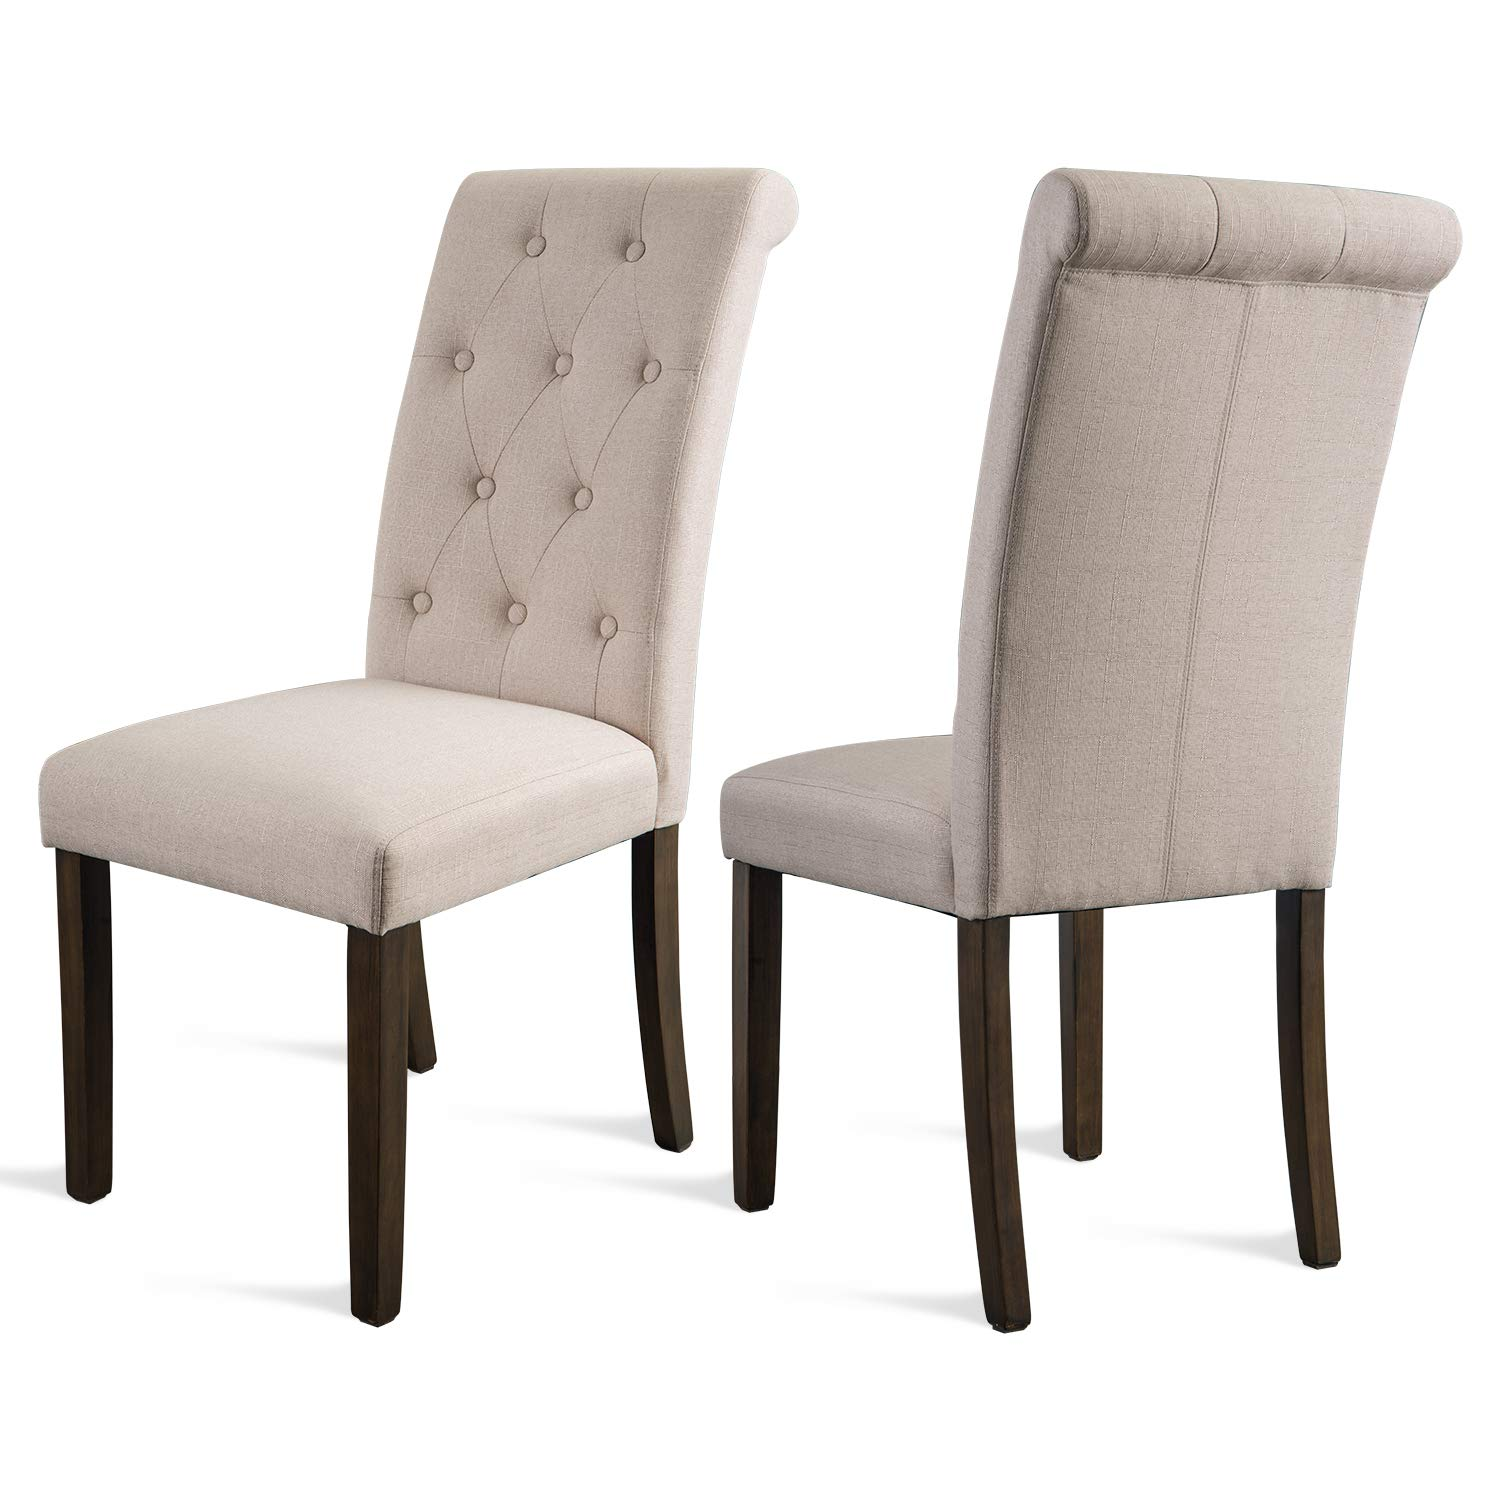 FLIEKS Dining Chairs Upholstered Tufted Parsons Chair Modern Accent Chairs with Nailhead Trim and Back Ring, Set of 2, Creamy White